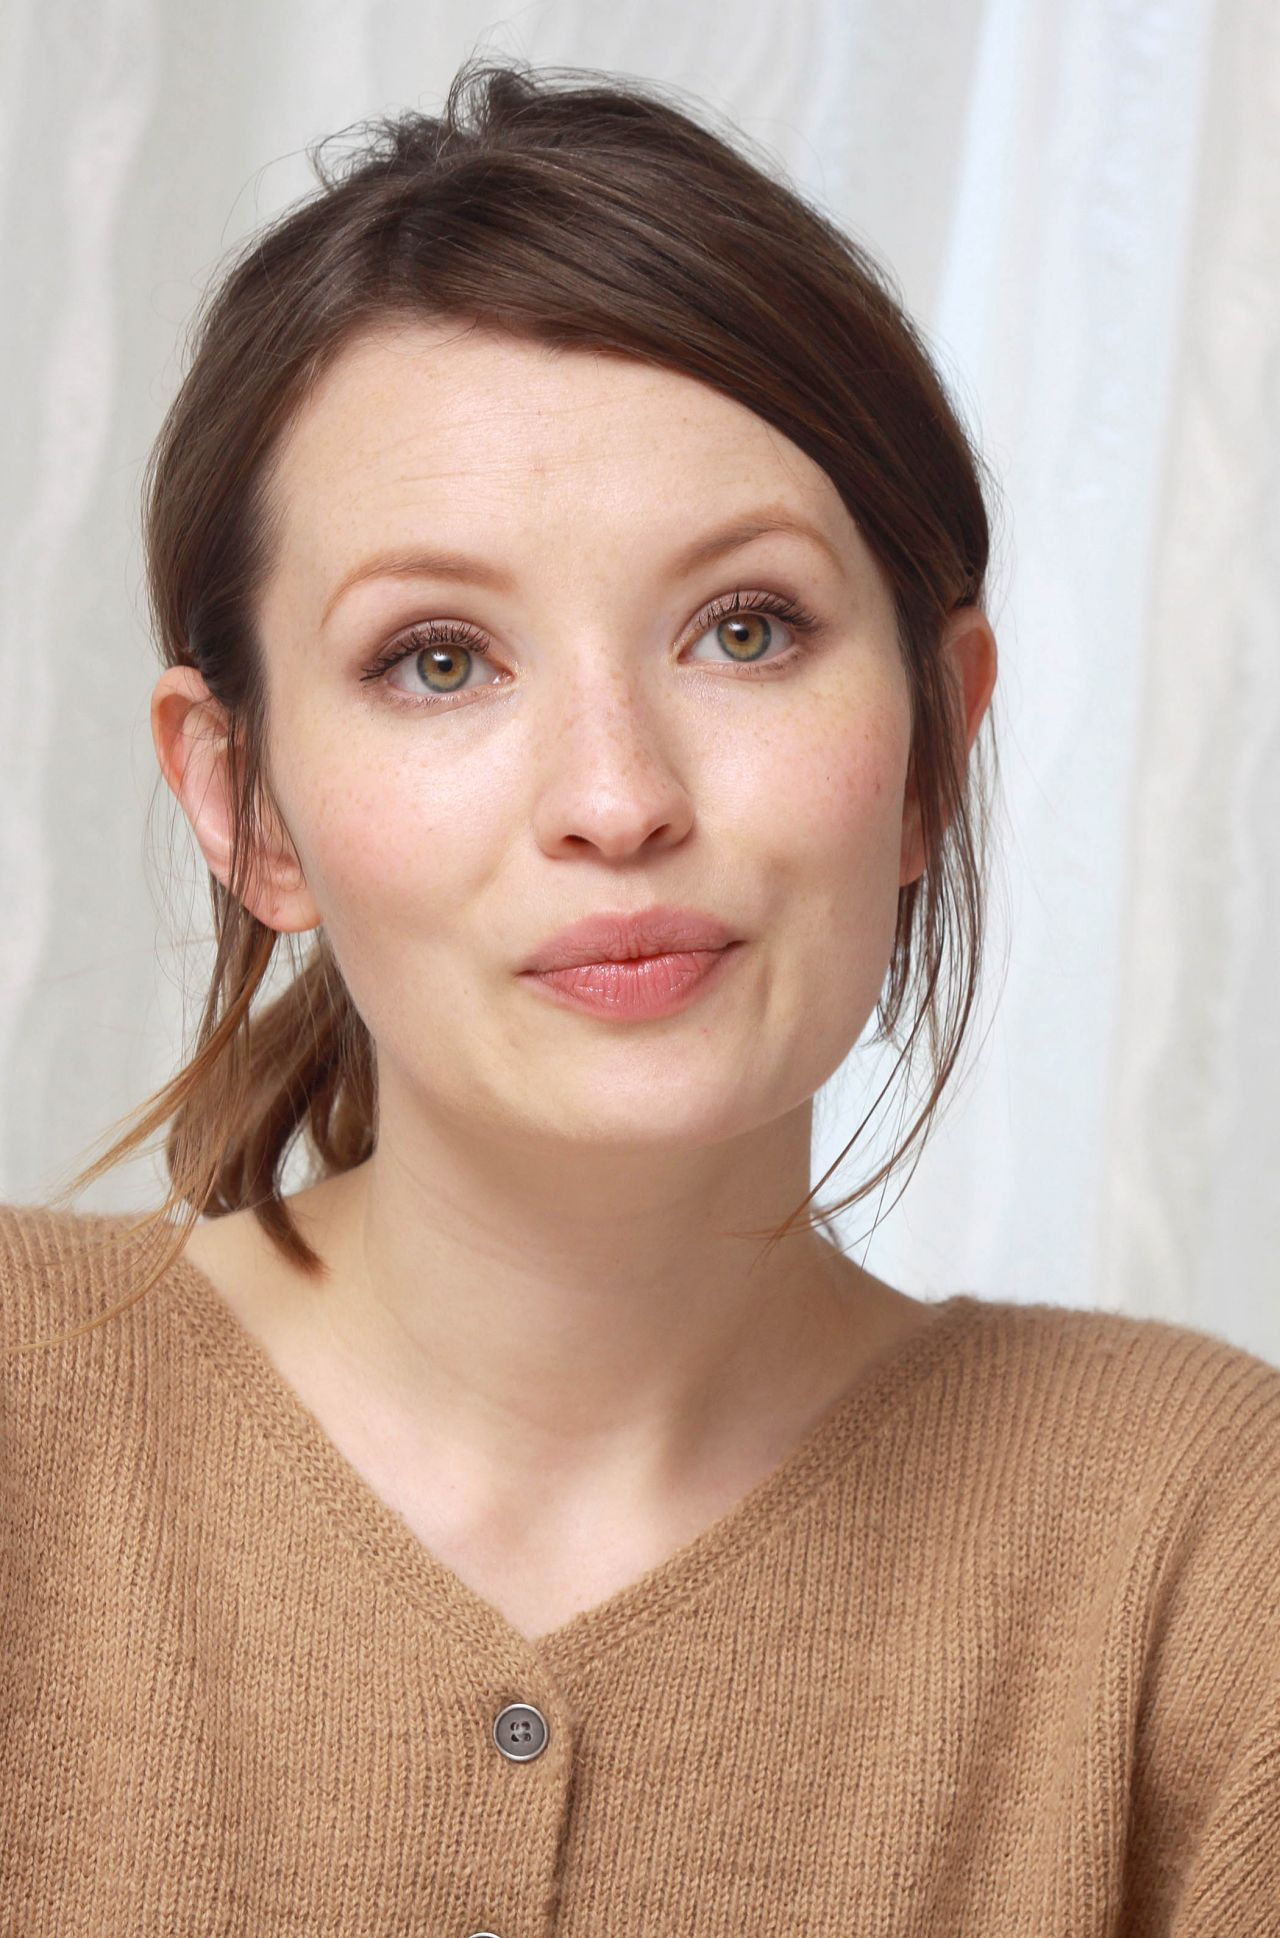 Emily Browning Actress Beauty Pinterest Emily Browning And Makeup